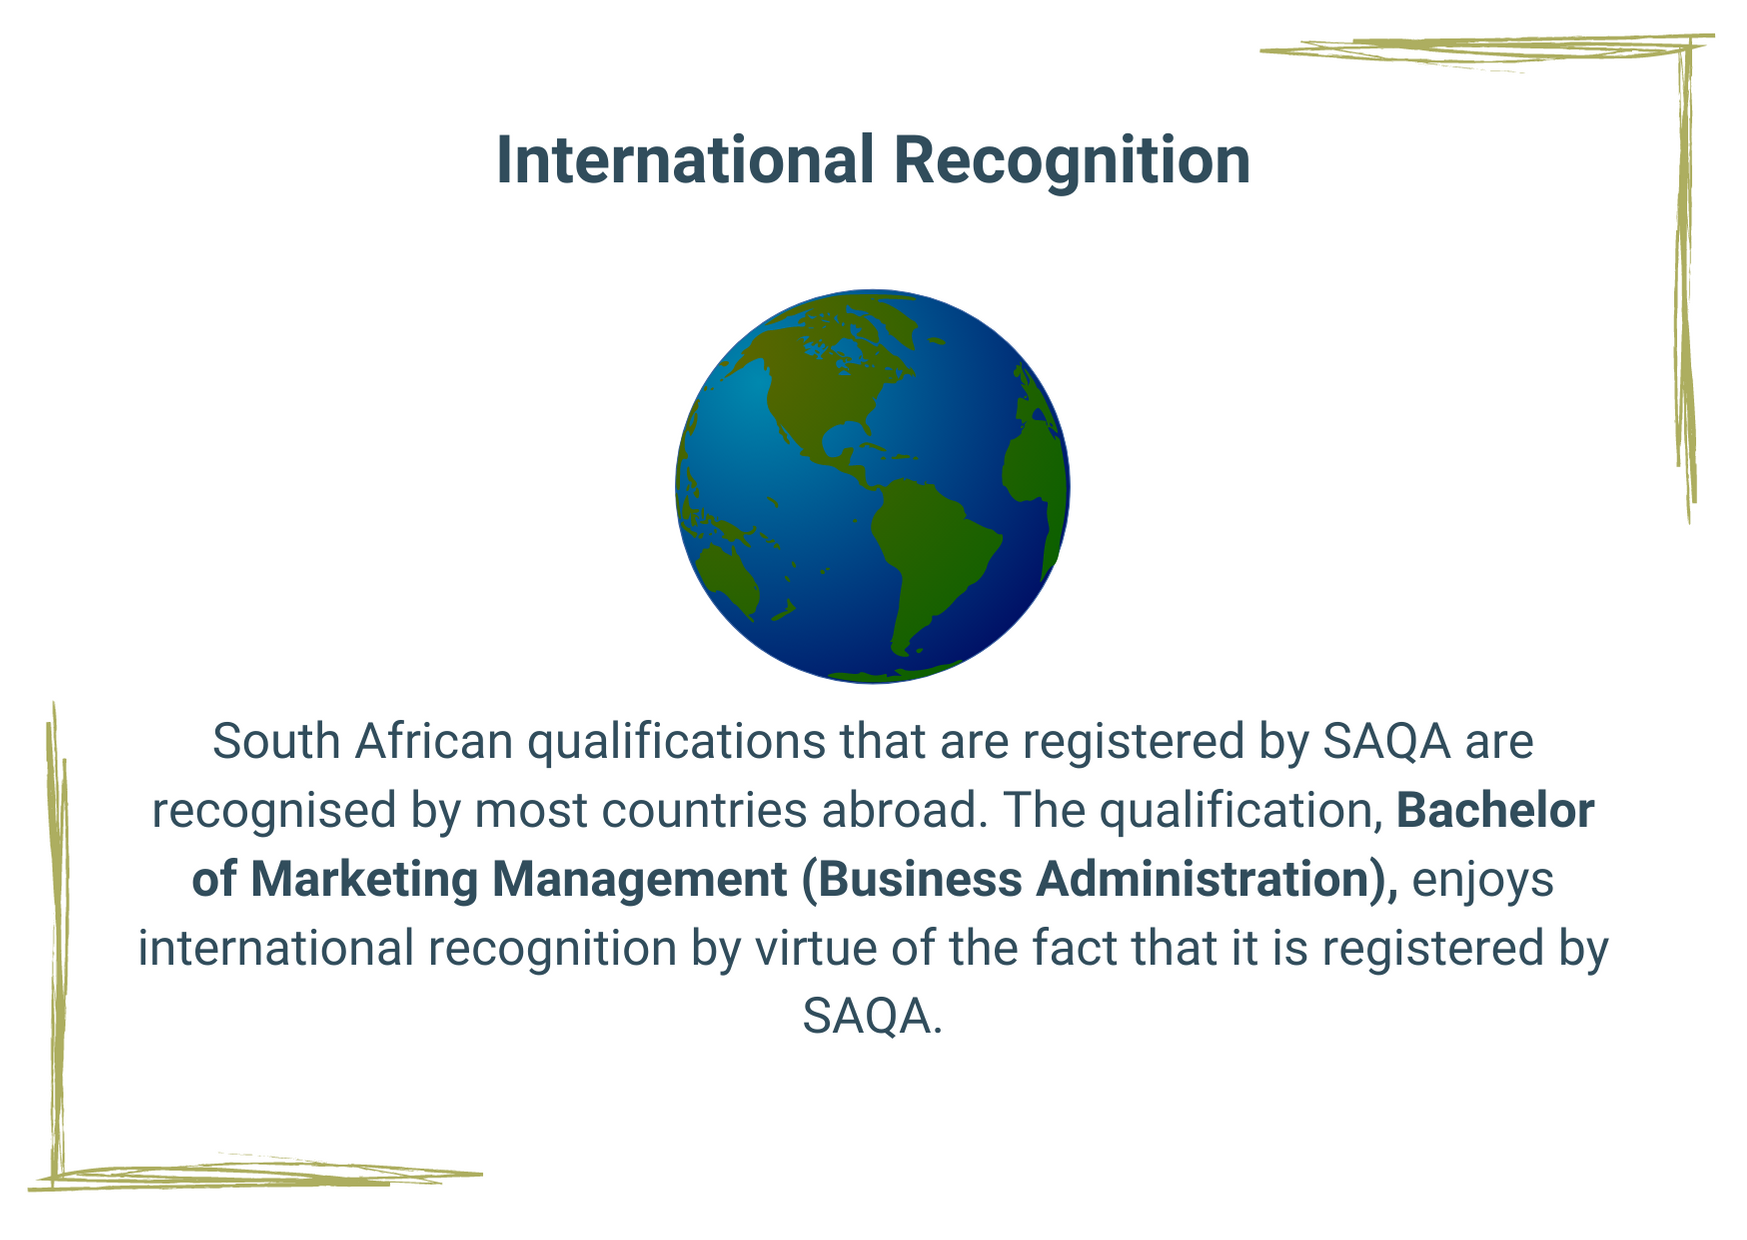 South African qualifications that are registered by SAQA are recognised by most countries abroad. The qualification, Bachelor of Marketing Management (Business Administration), enjoys international recognition by virtue of the fact that it is registered by SAQA.